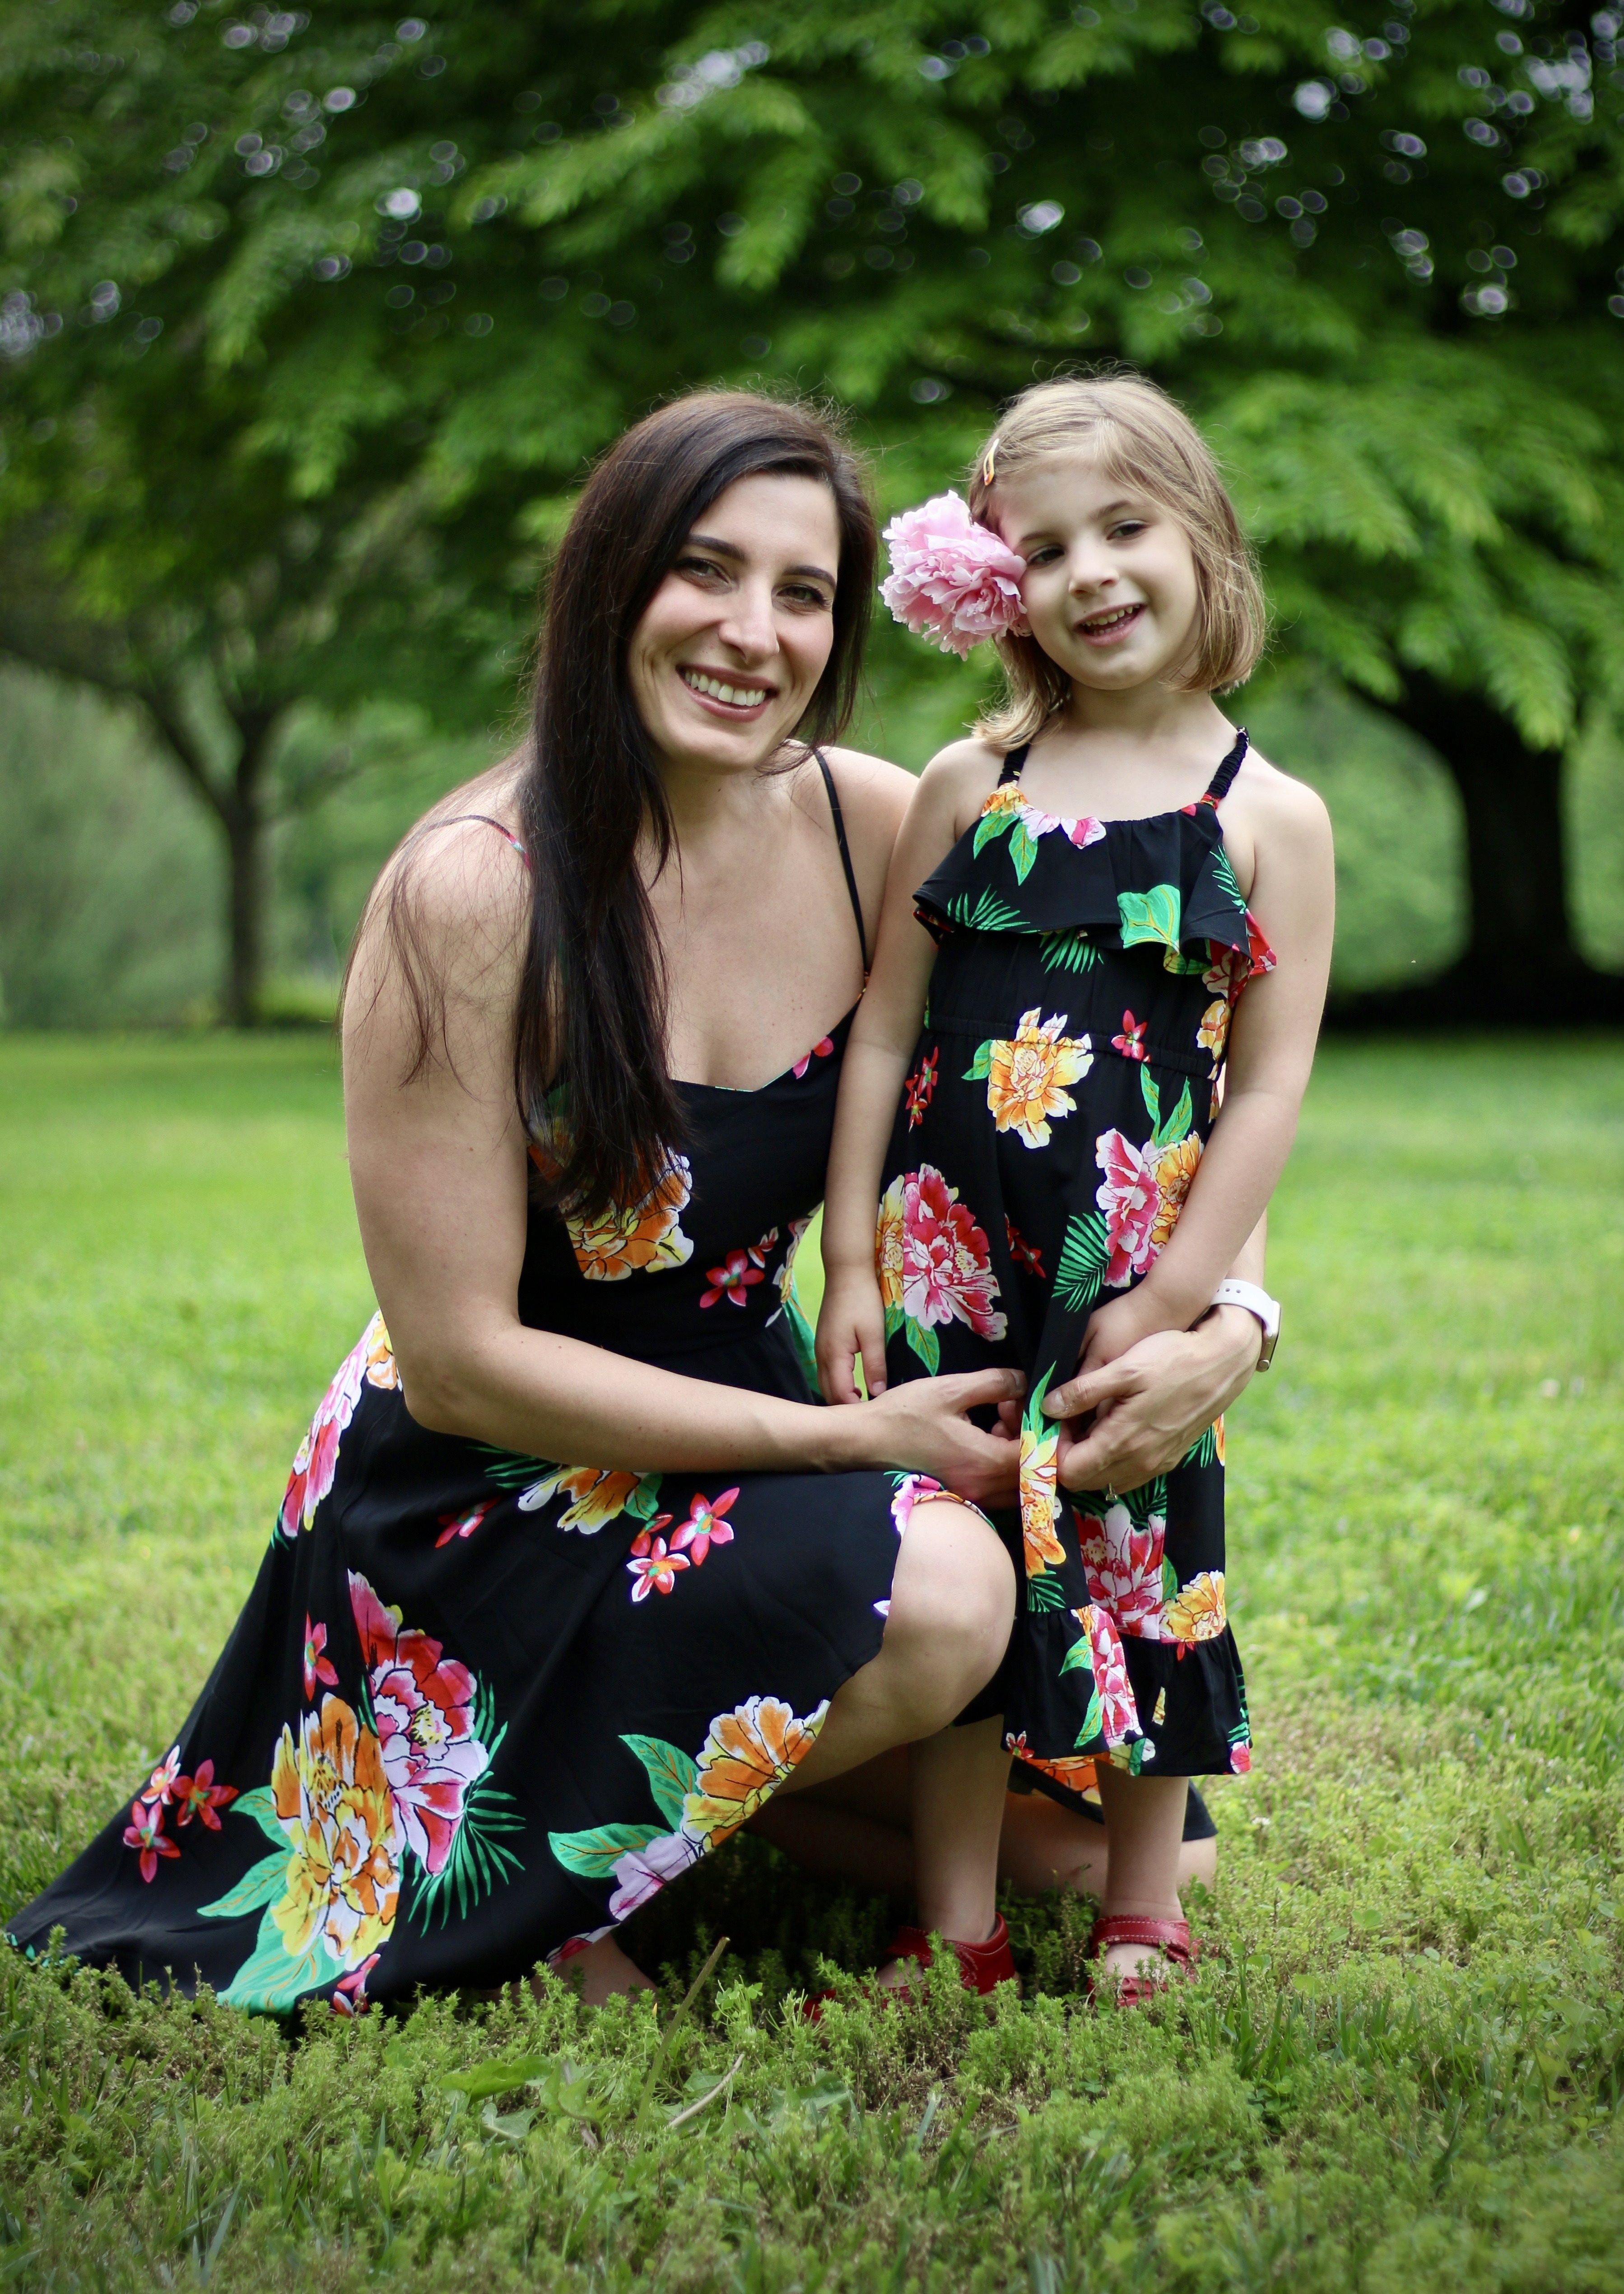 b2fac72b4a1 Mommy and Me Outfits - Old Navy Floral Dresses